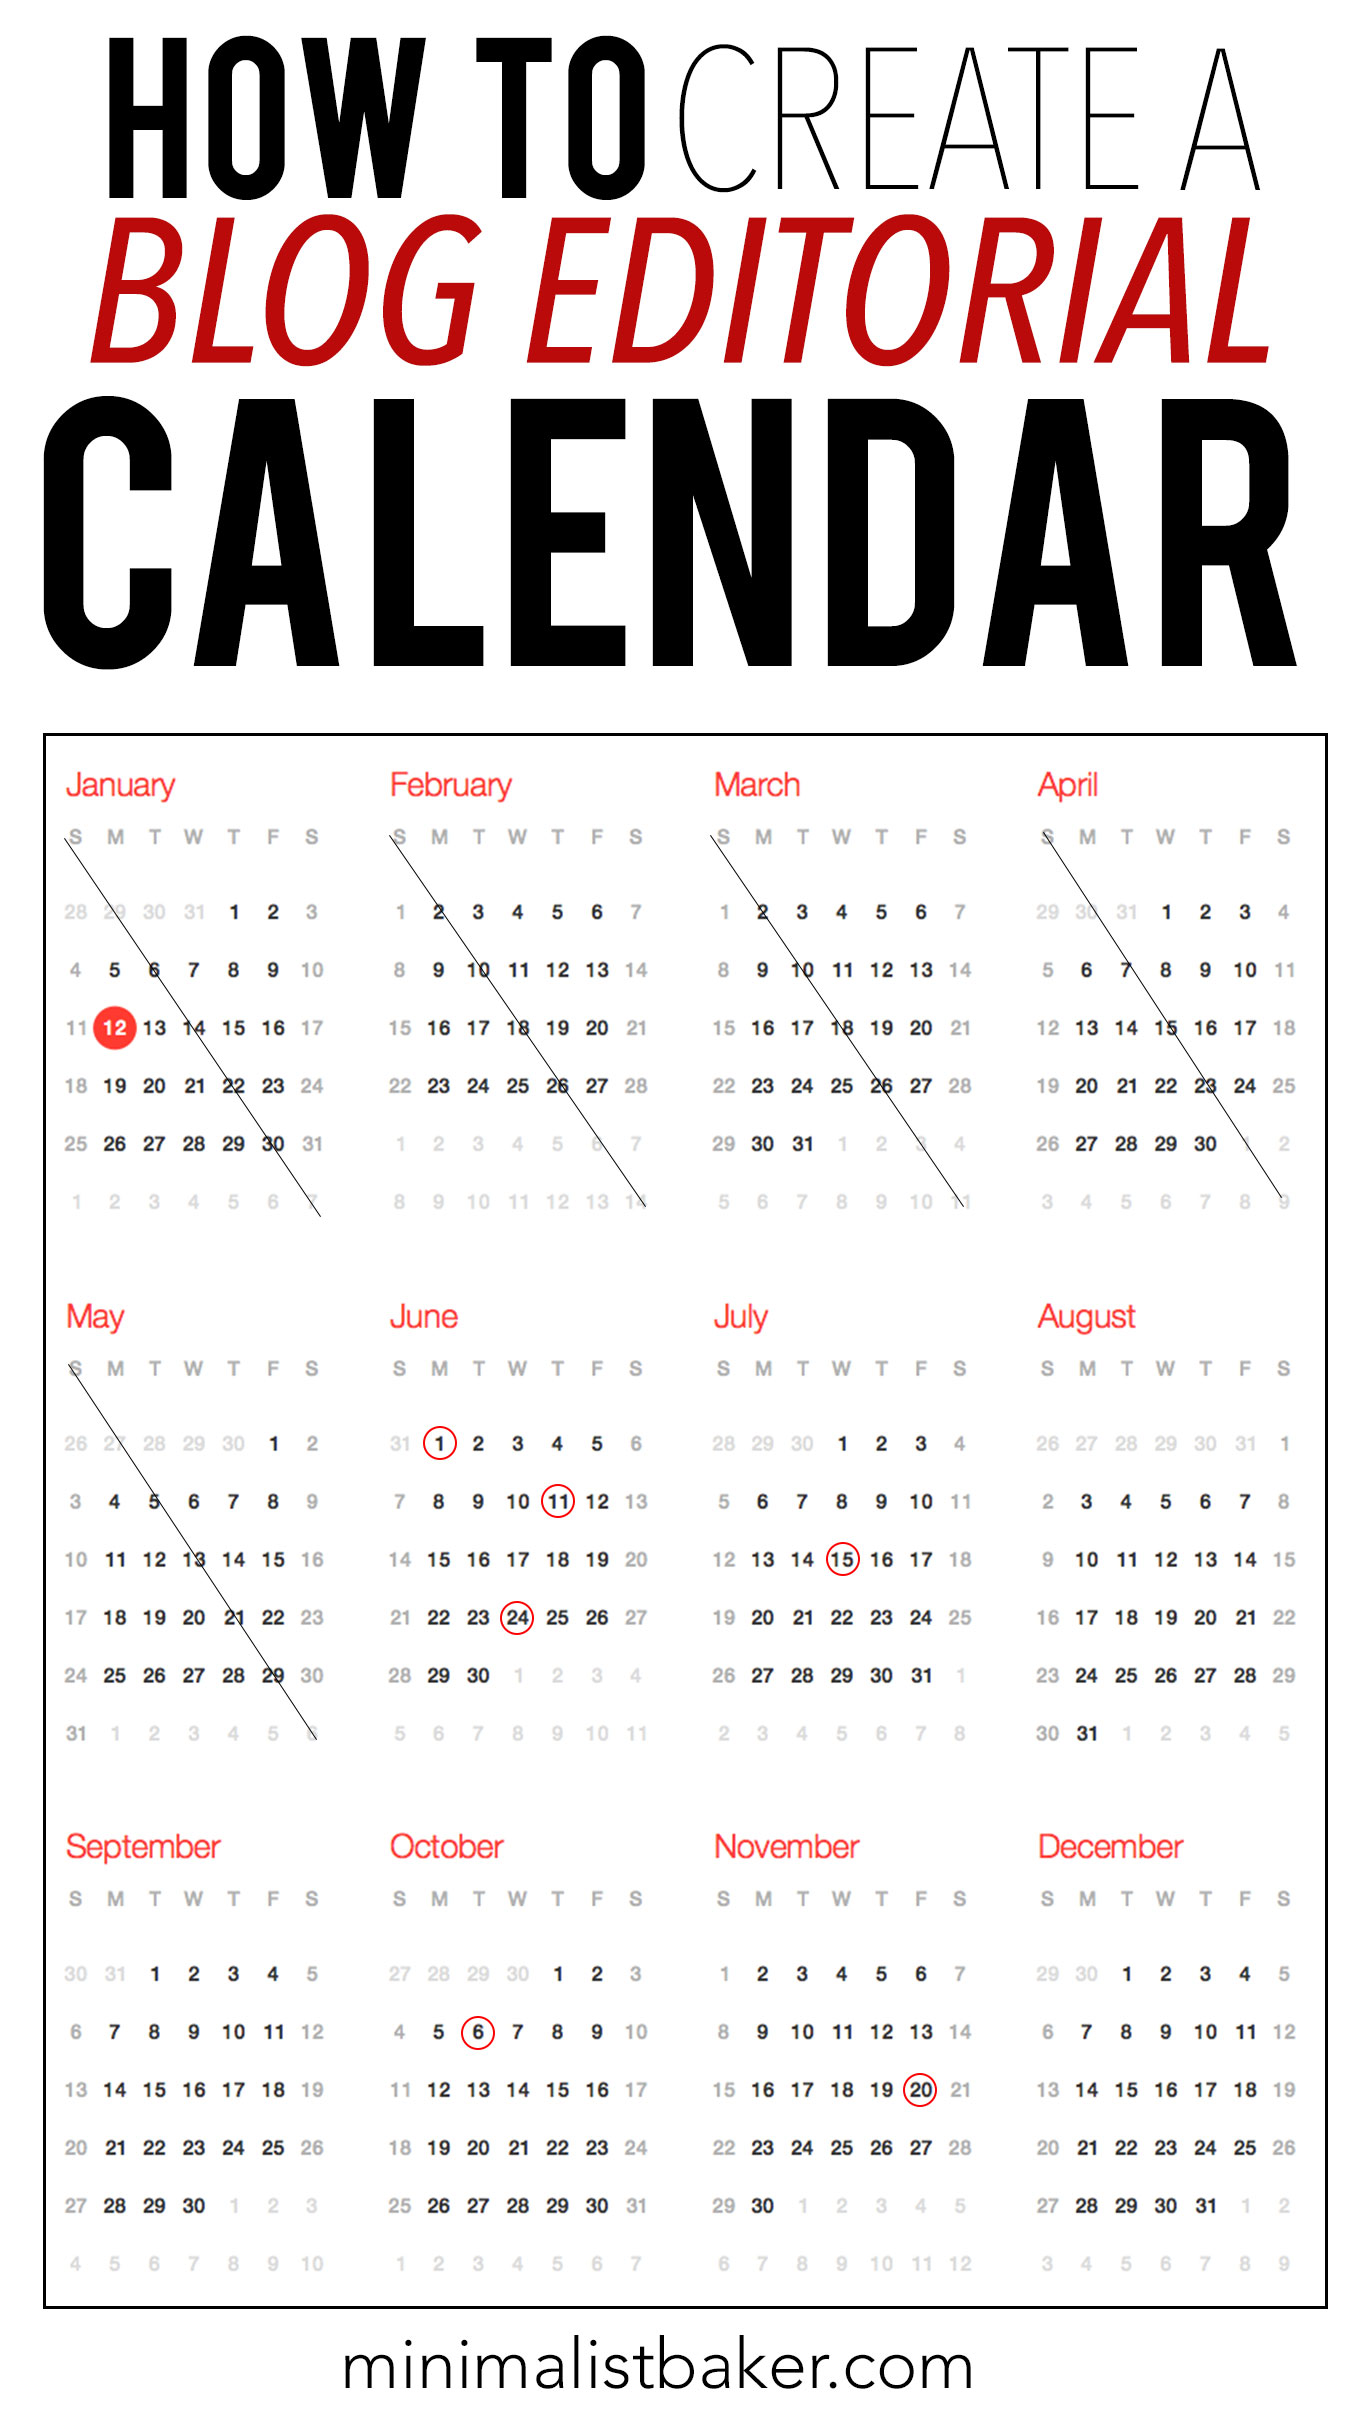 How to Create a Blog Editorial Calendar